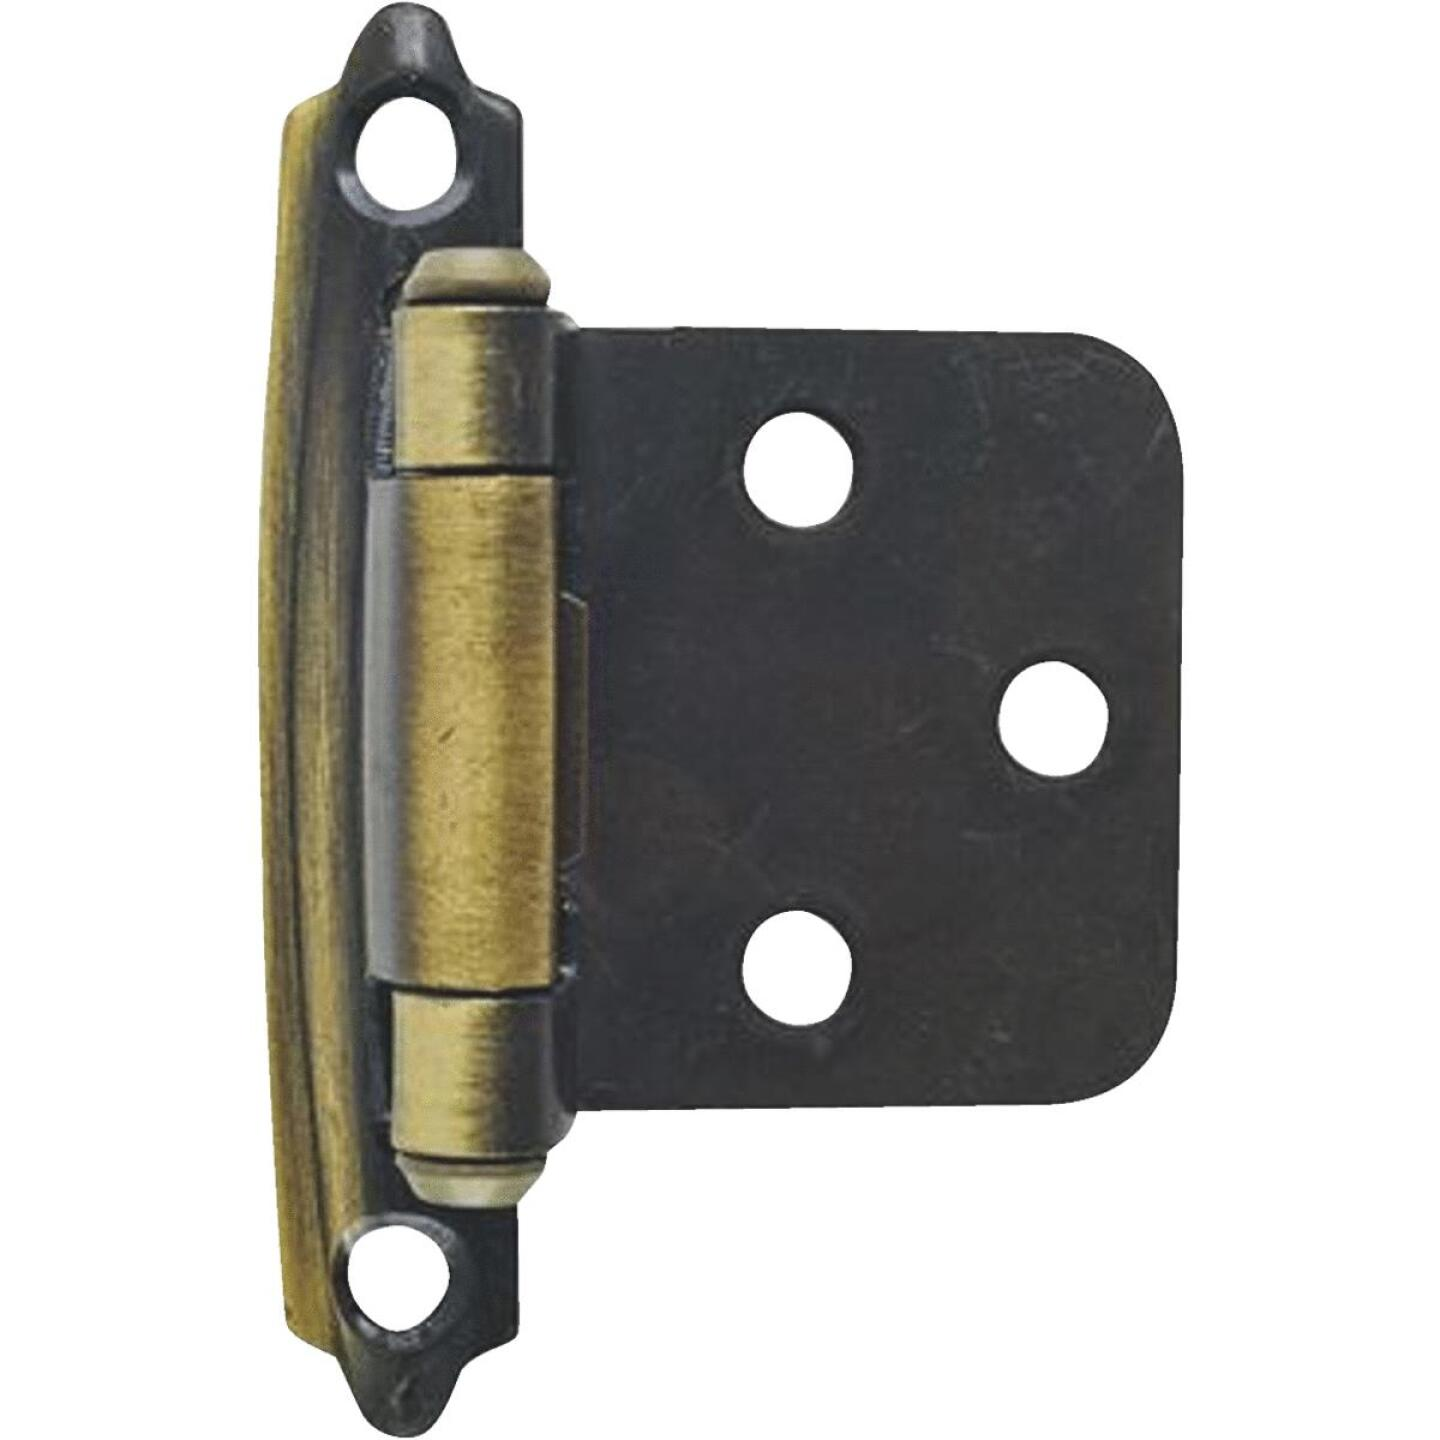 Amerock Antique Brass Self-Closing Face Mount Variable Overlay Hinge (2-Pack) Image 1